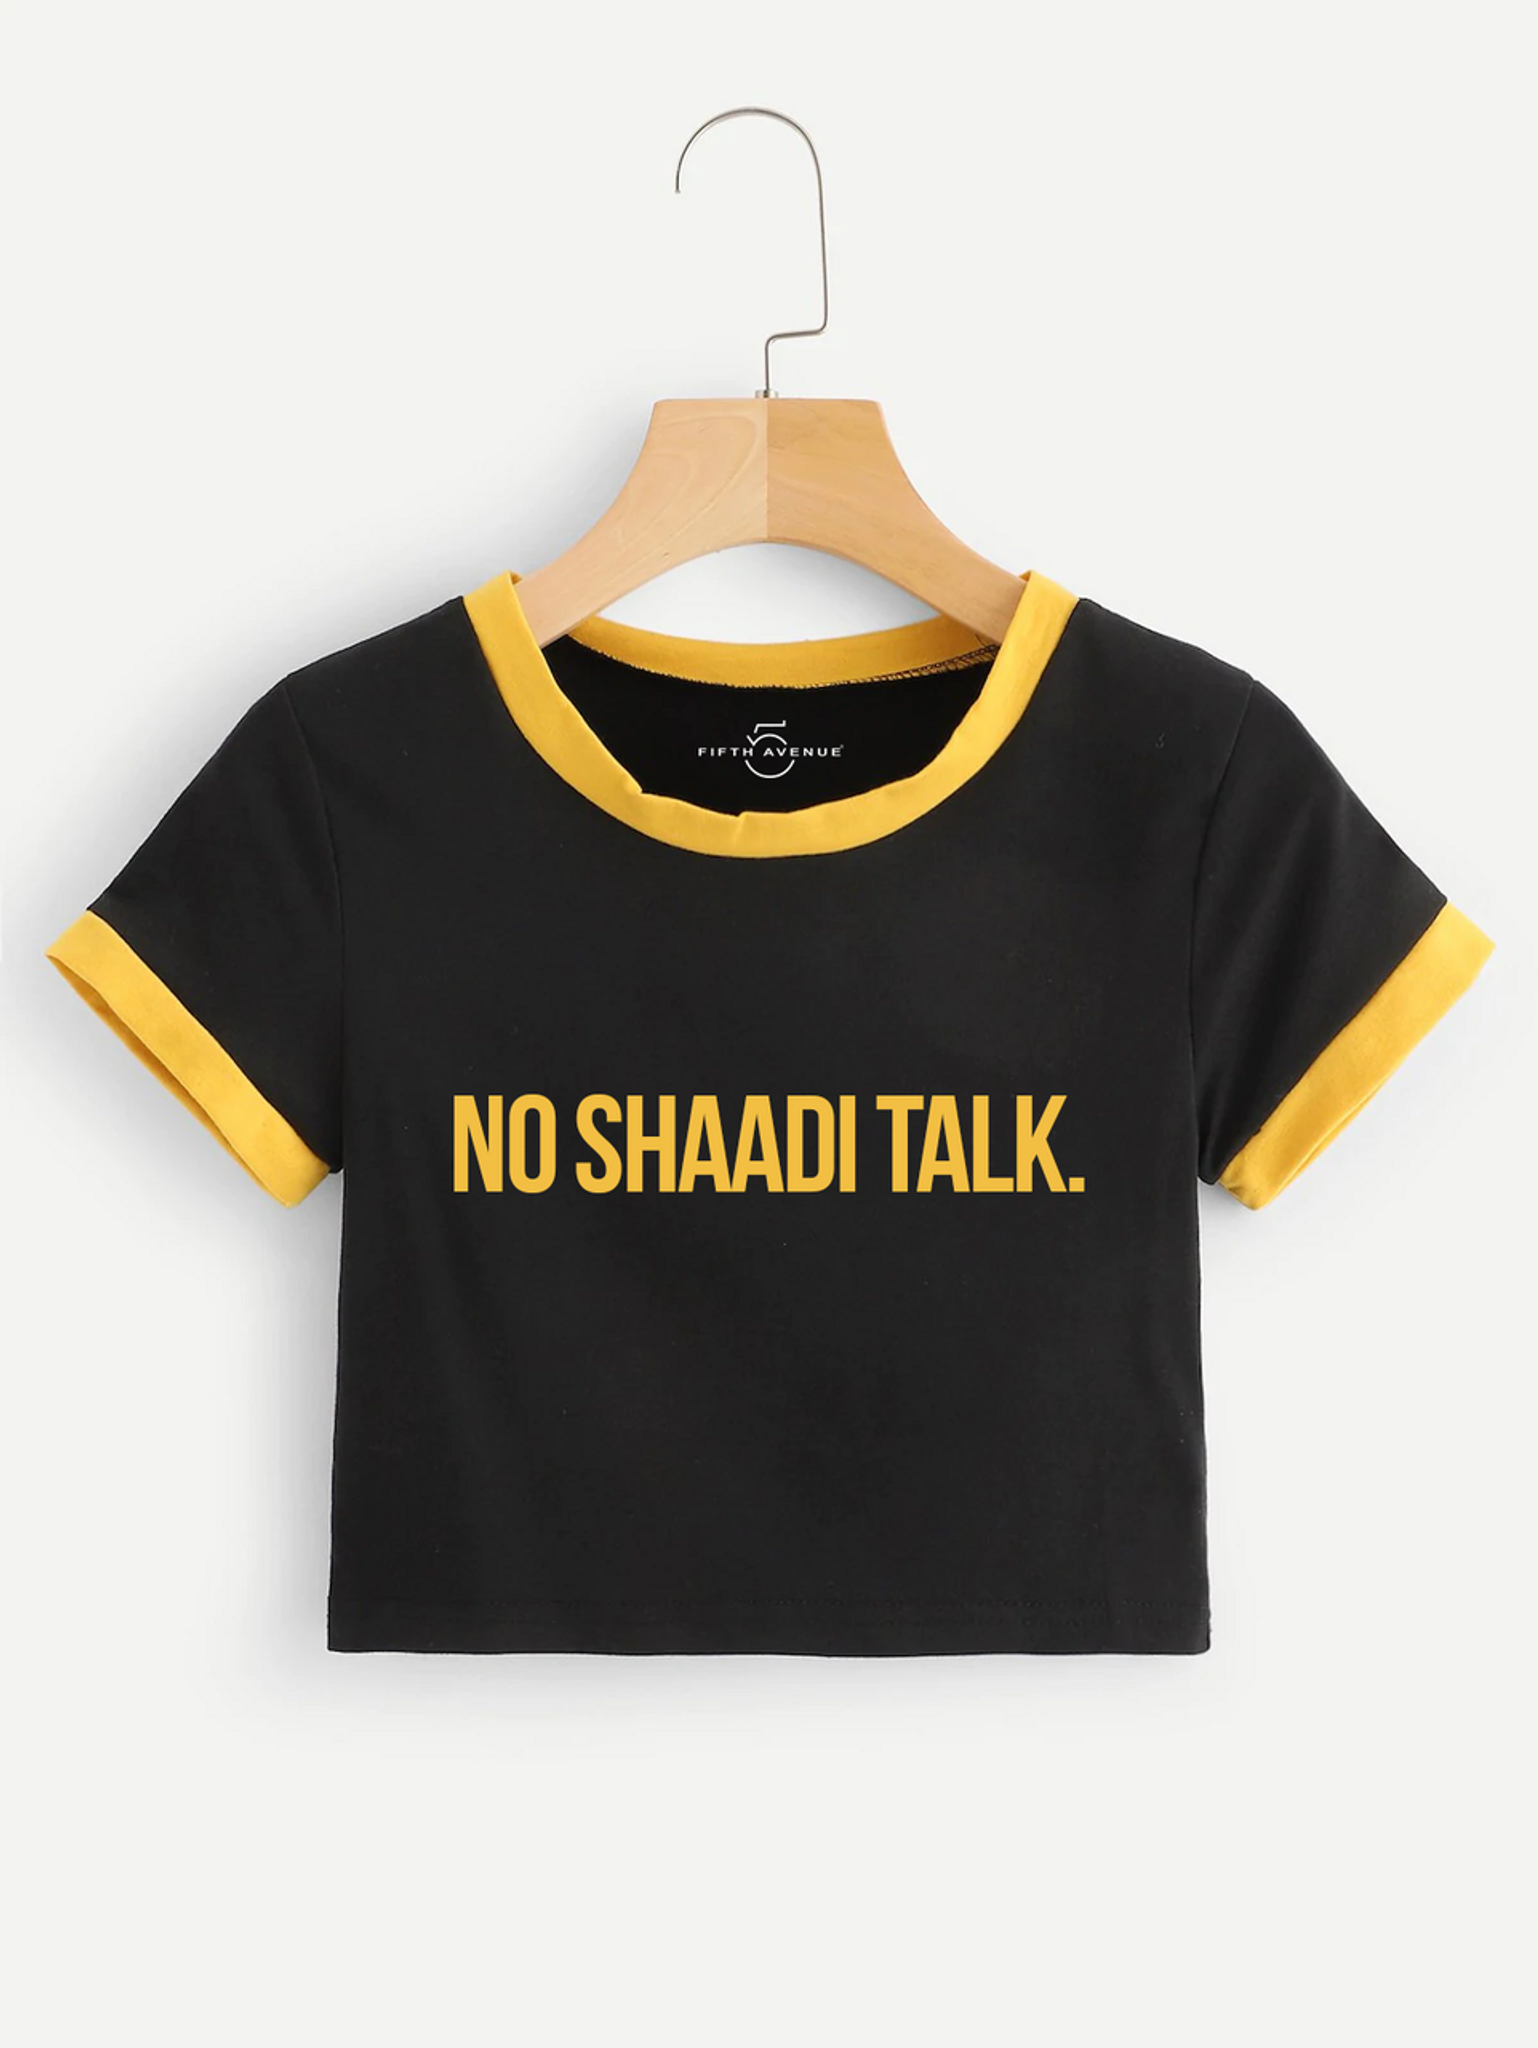 Fifth Avenue Women's STS57 No Shaadi Talk Print Crop Ringer T-Shirt - Black and Yellow